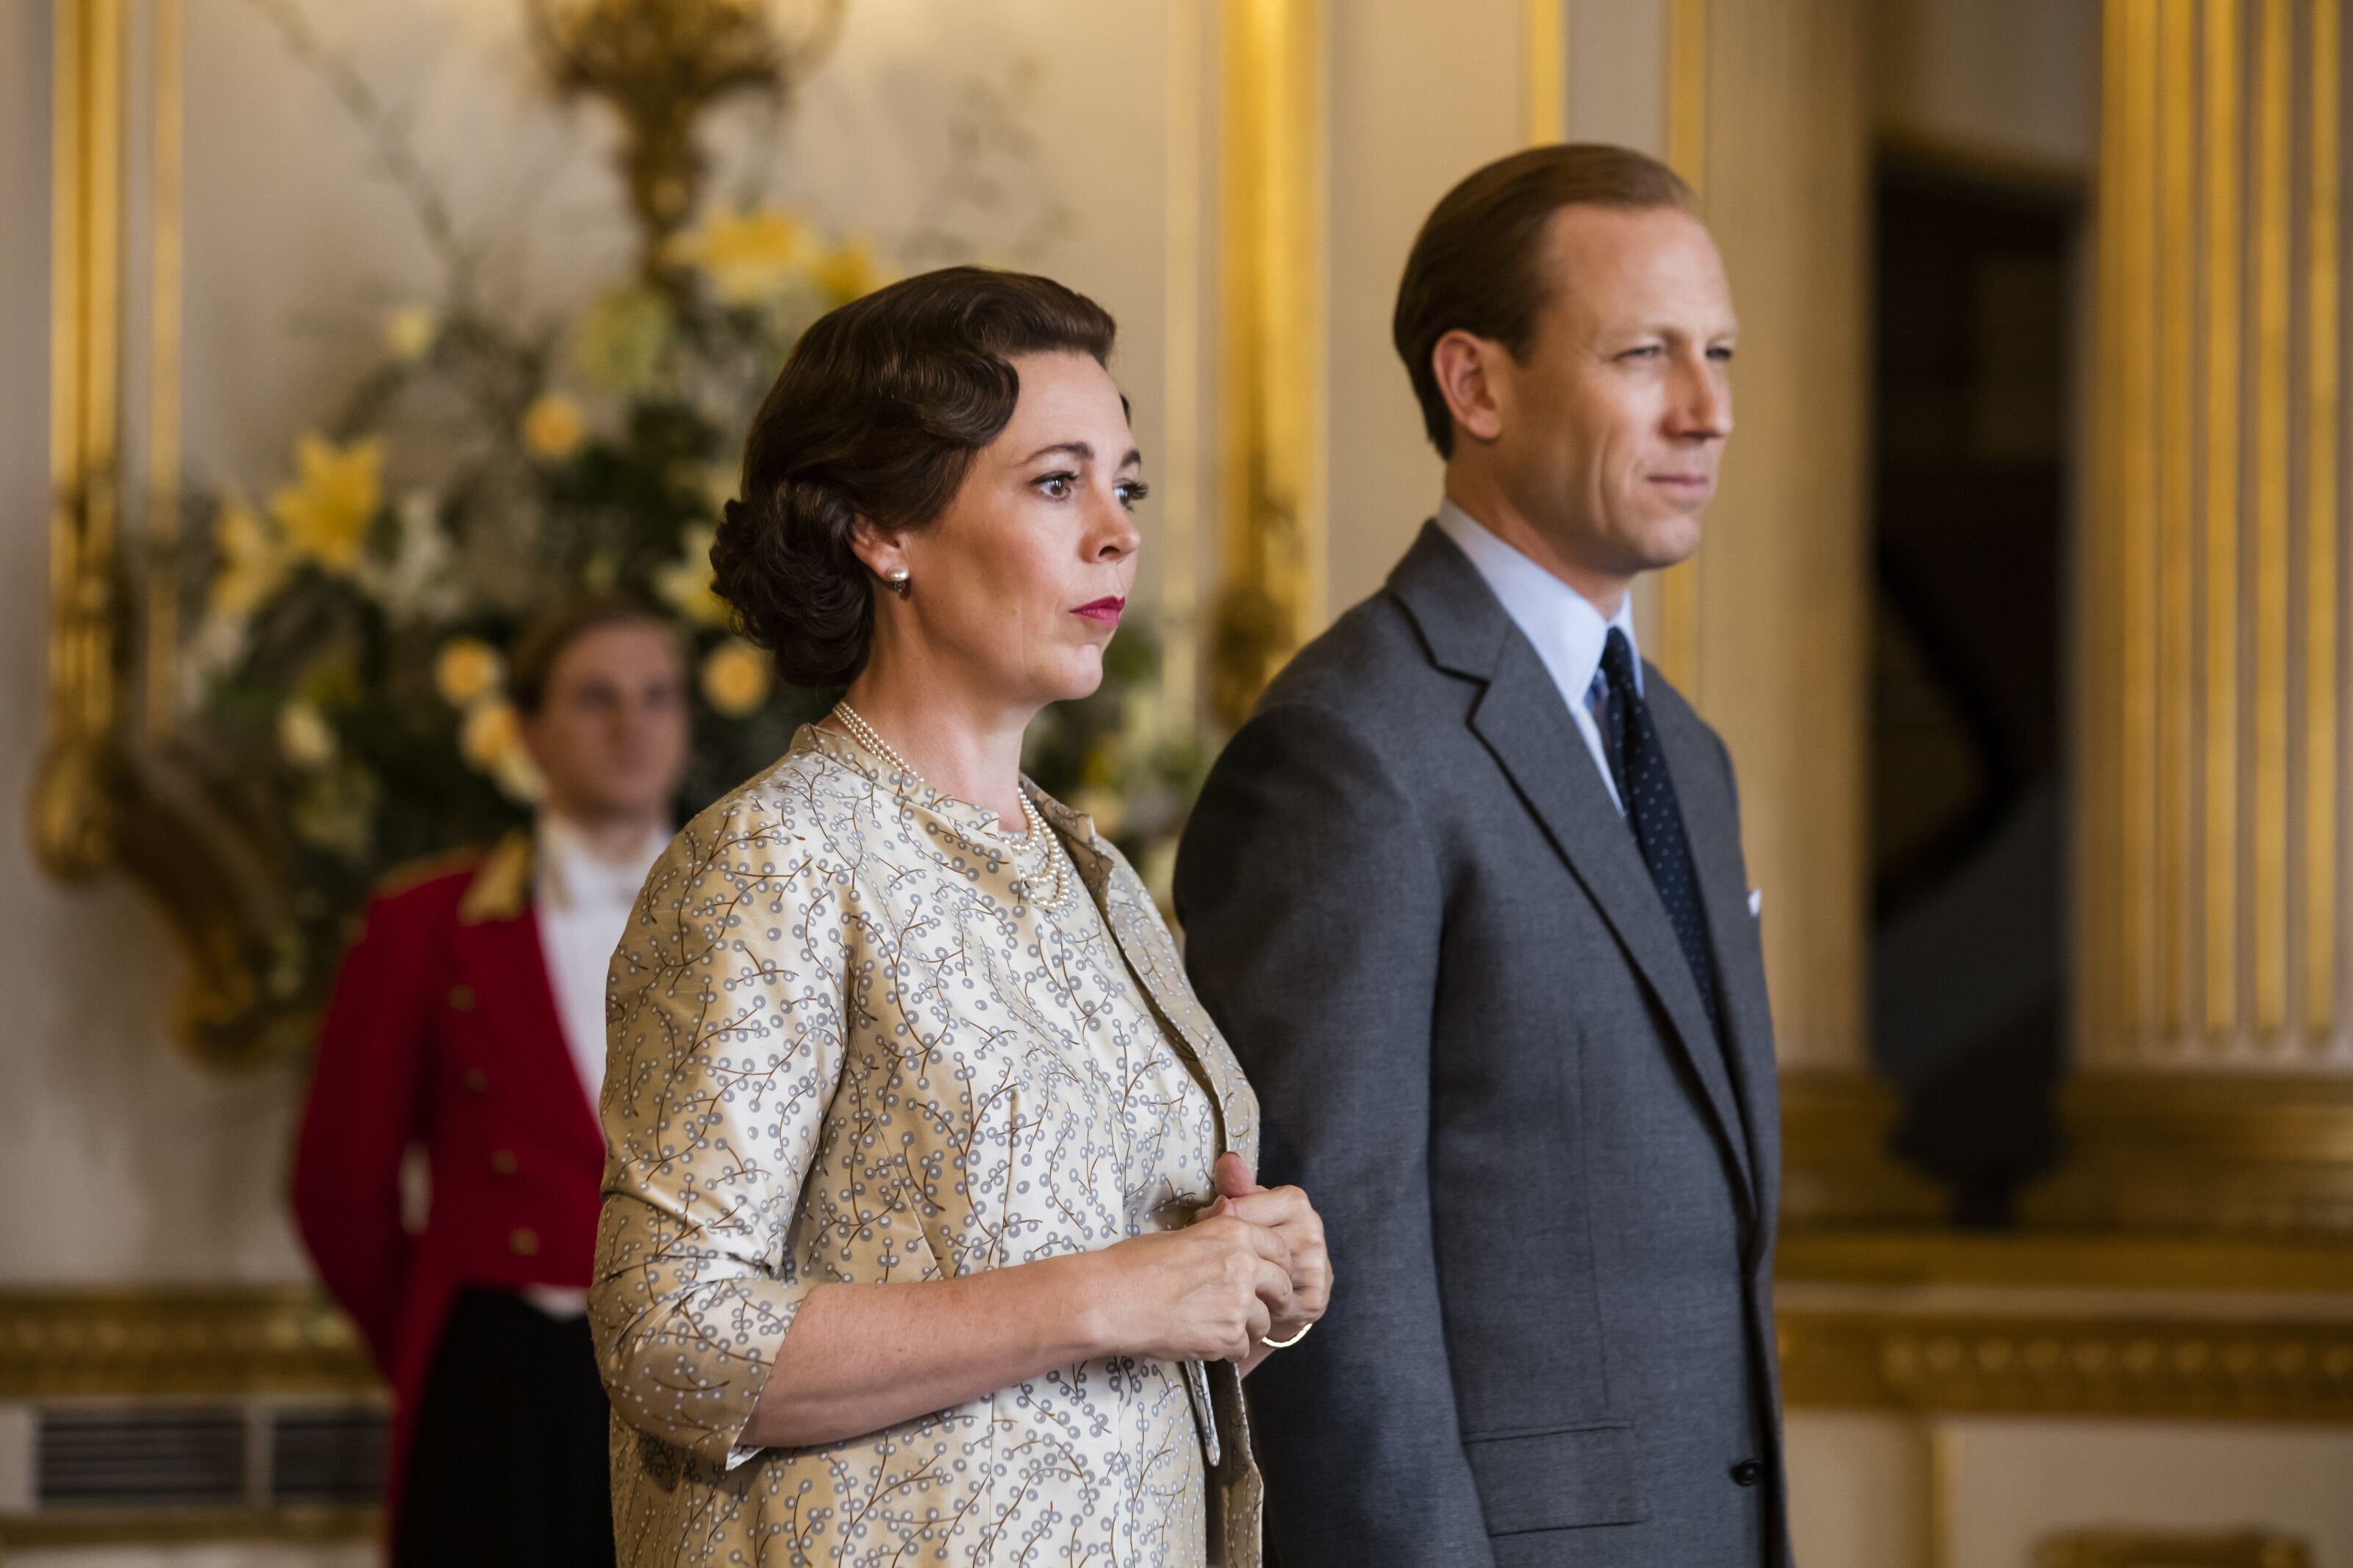 What to watch on Netflix this weekend, Nov. 15: The Crown, Klaus and more